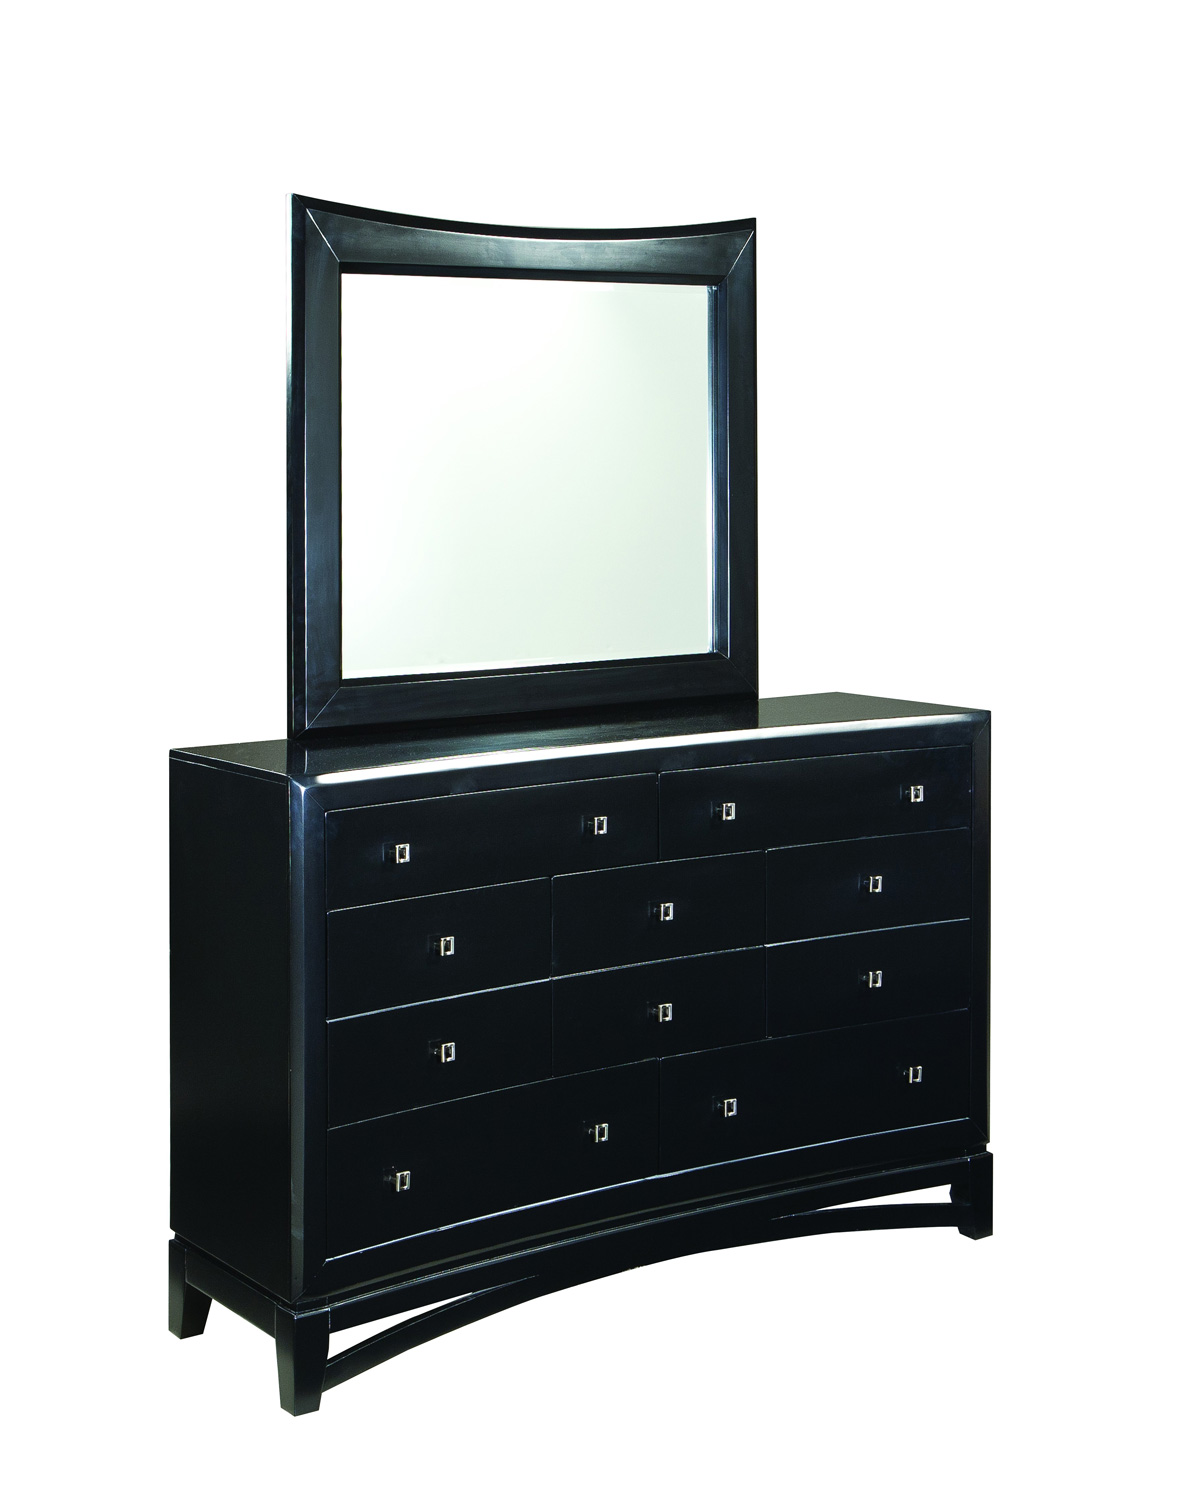 Global Furniture USA Madeline Dresser - Black